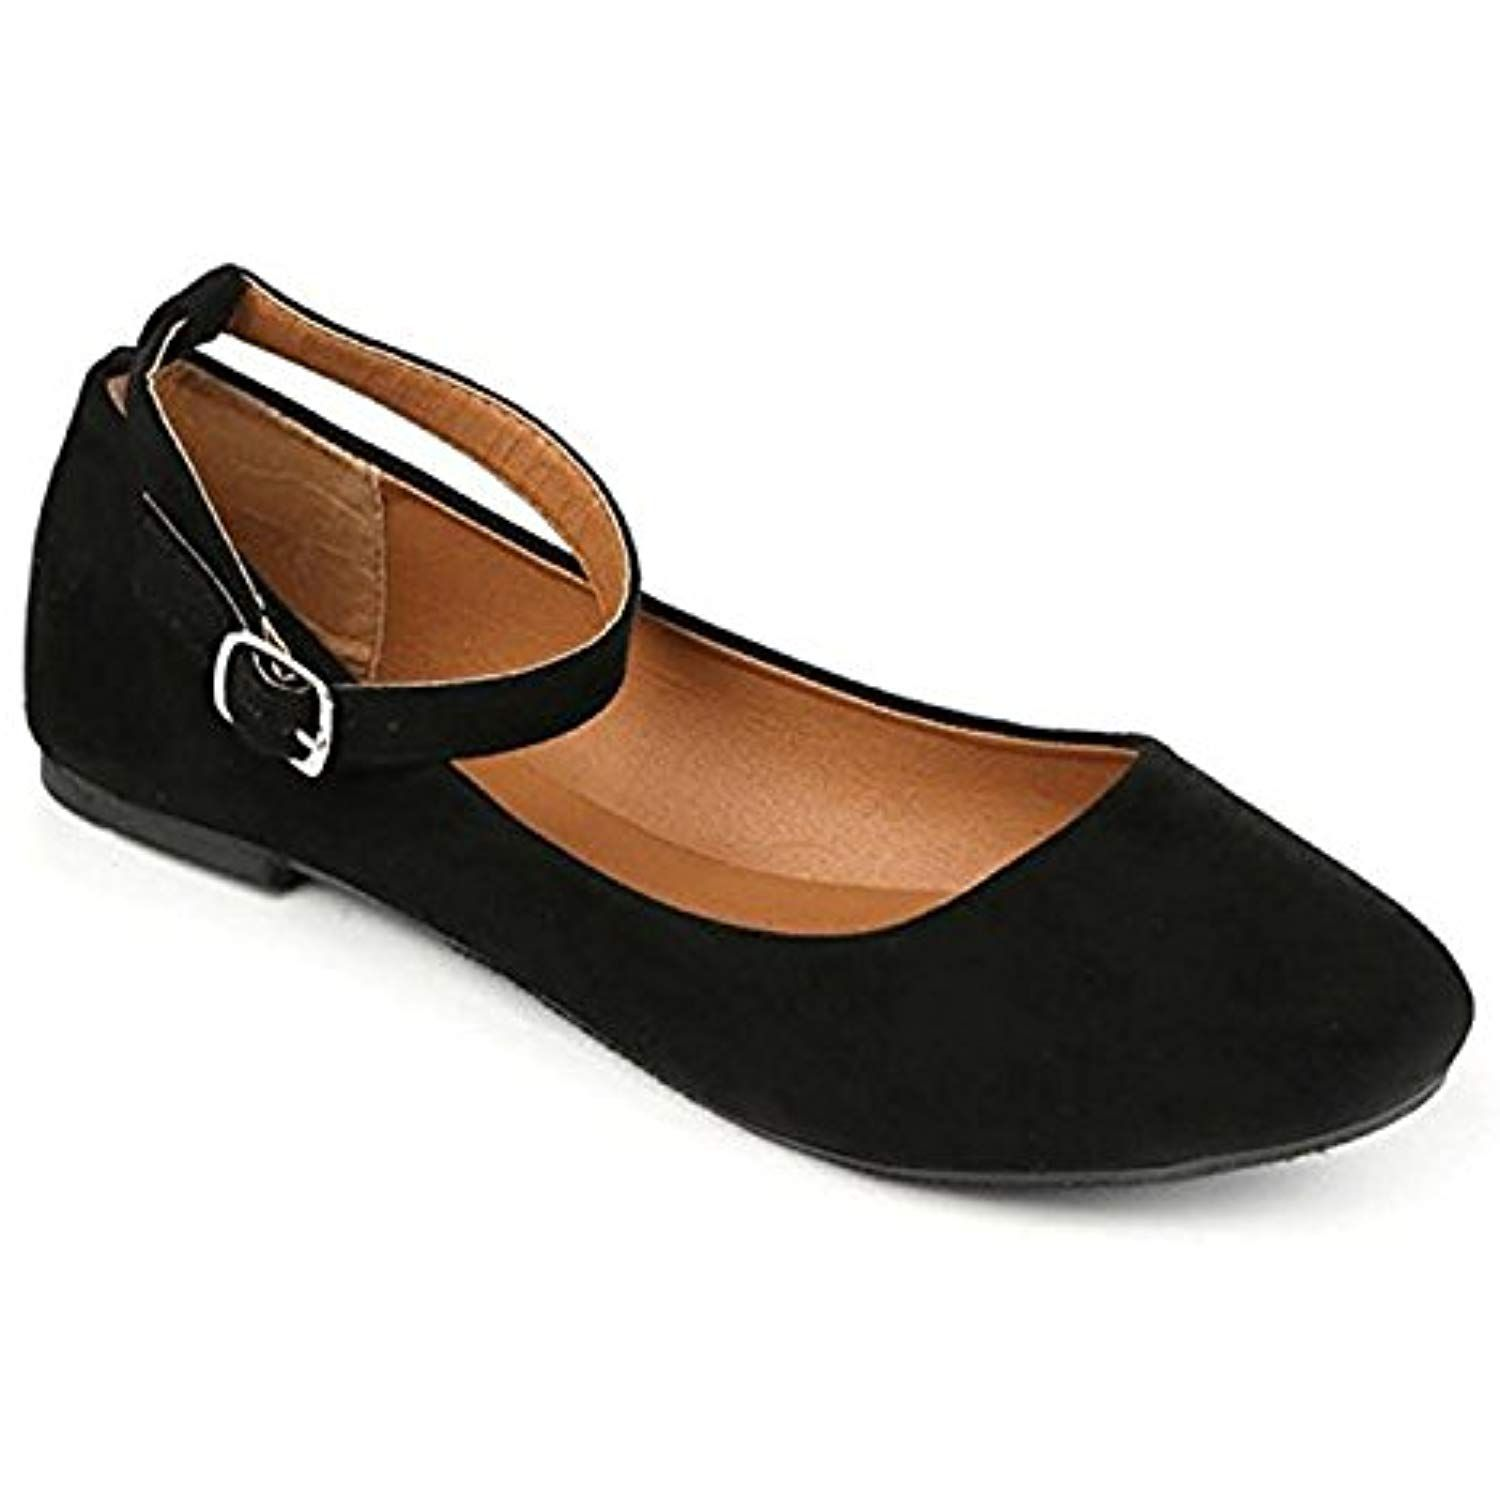 Womens Flats Jersey Soft And Faux Vegan Leather Comfortable Basic Canvas Slip On Ballet Shoes Dress